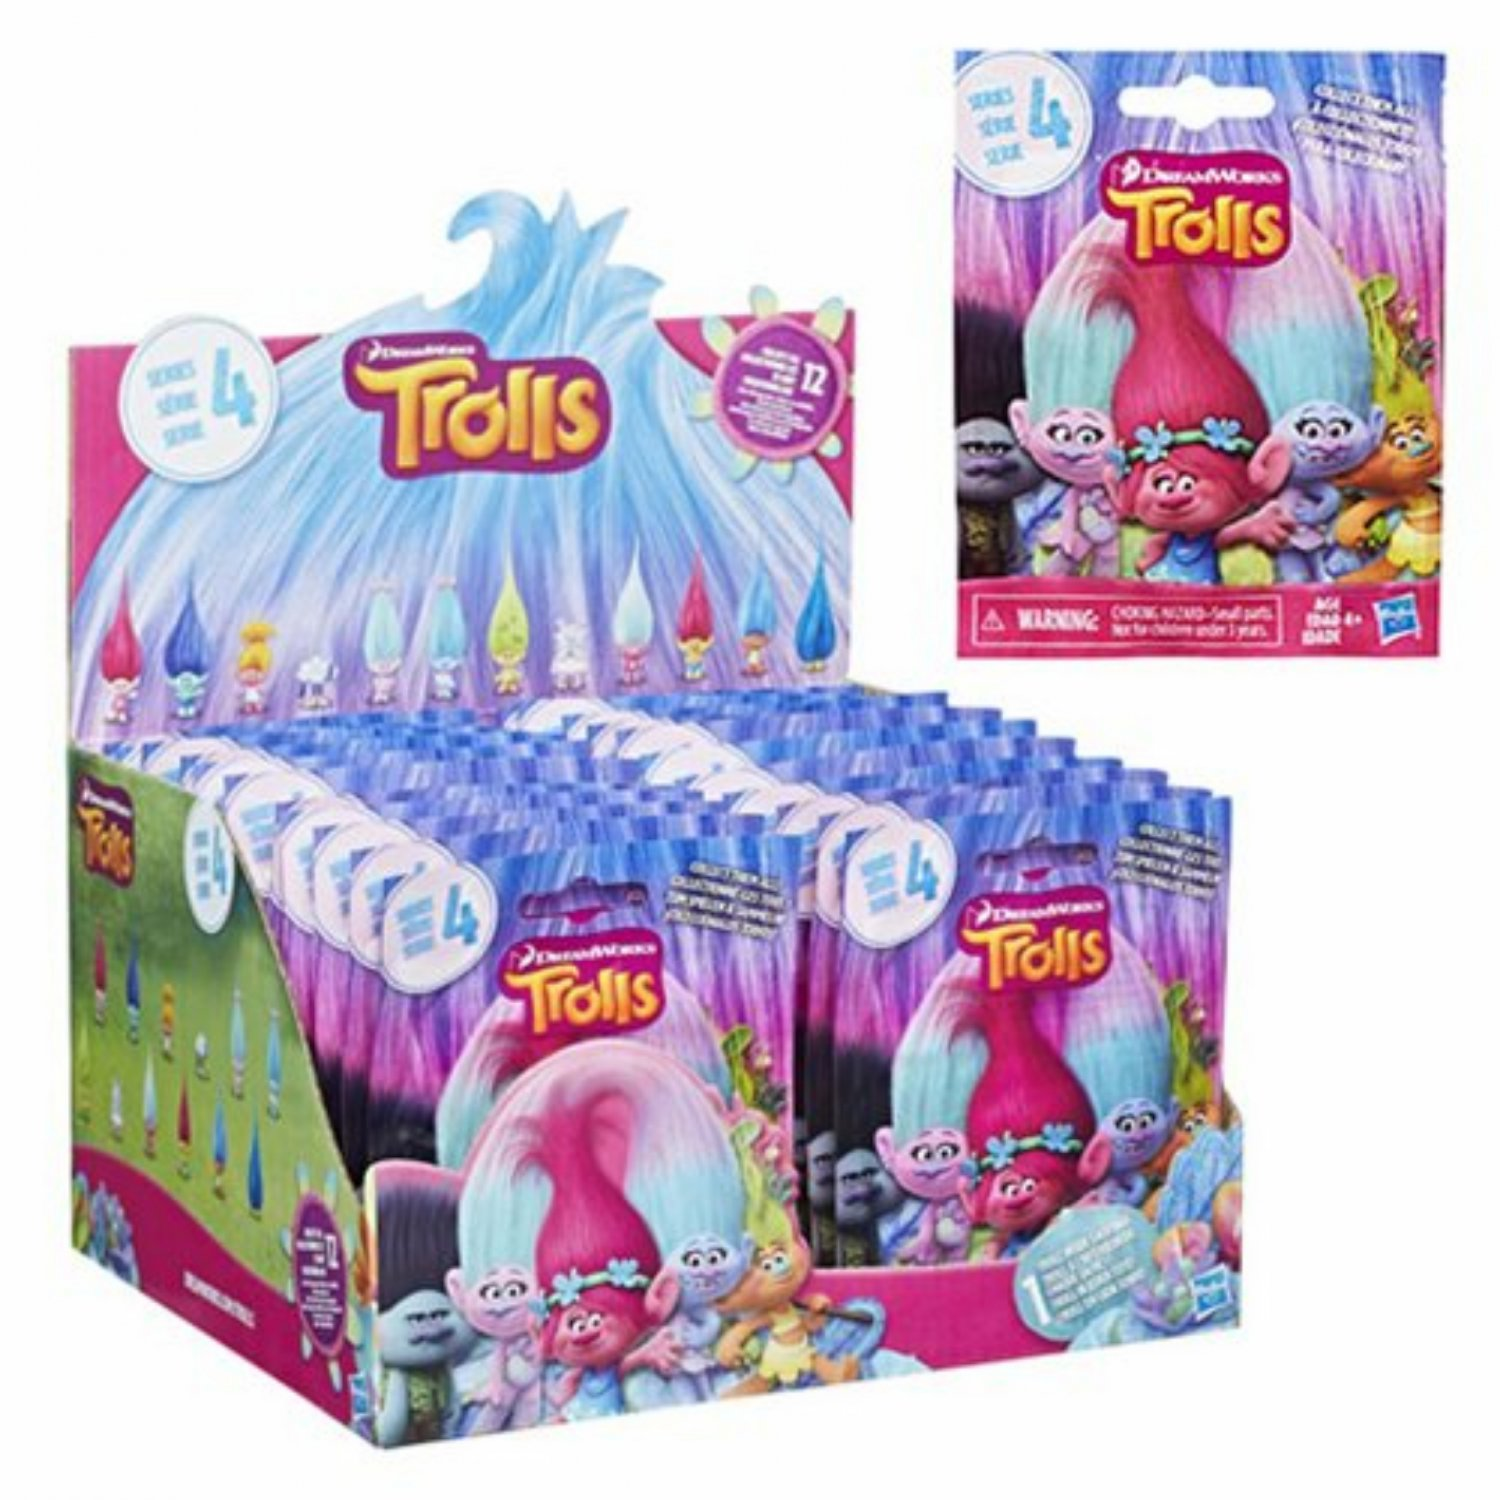 DreamWorks Trolls Movie Surprise Mini Figure Series 4 Mystery Blind Bag �12 Packs by Hasbro